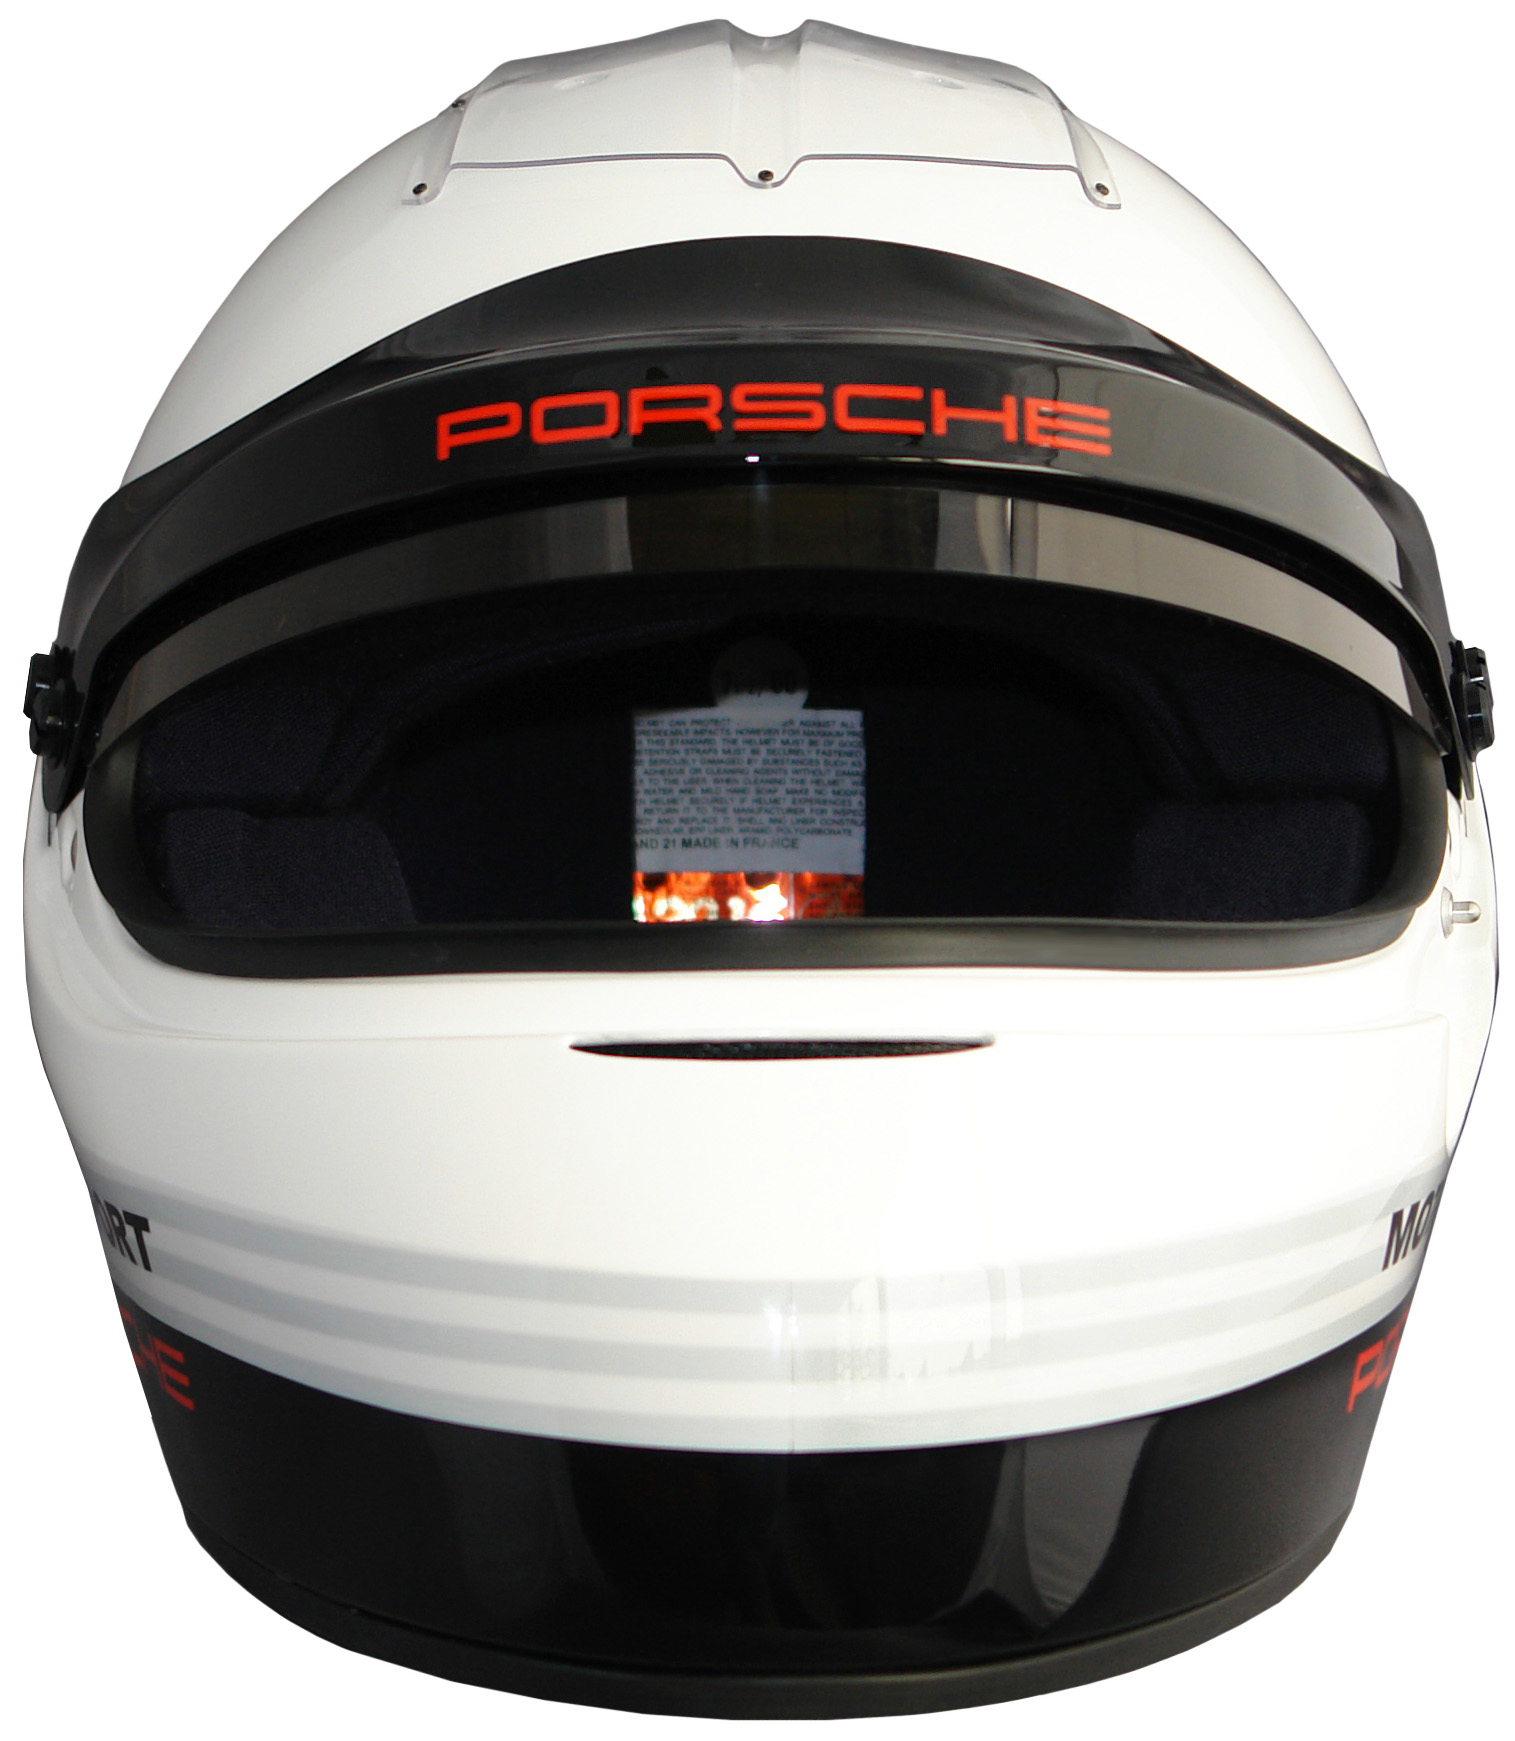 Porsche Motorsport IVOS-Double Duty helmet with SNELL SA 2010 standard